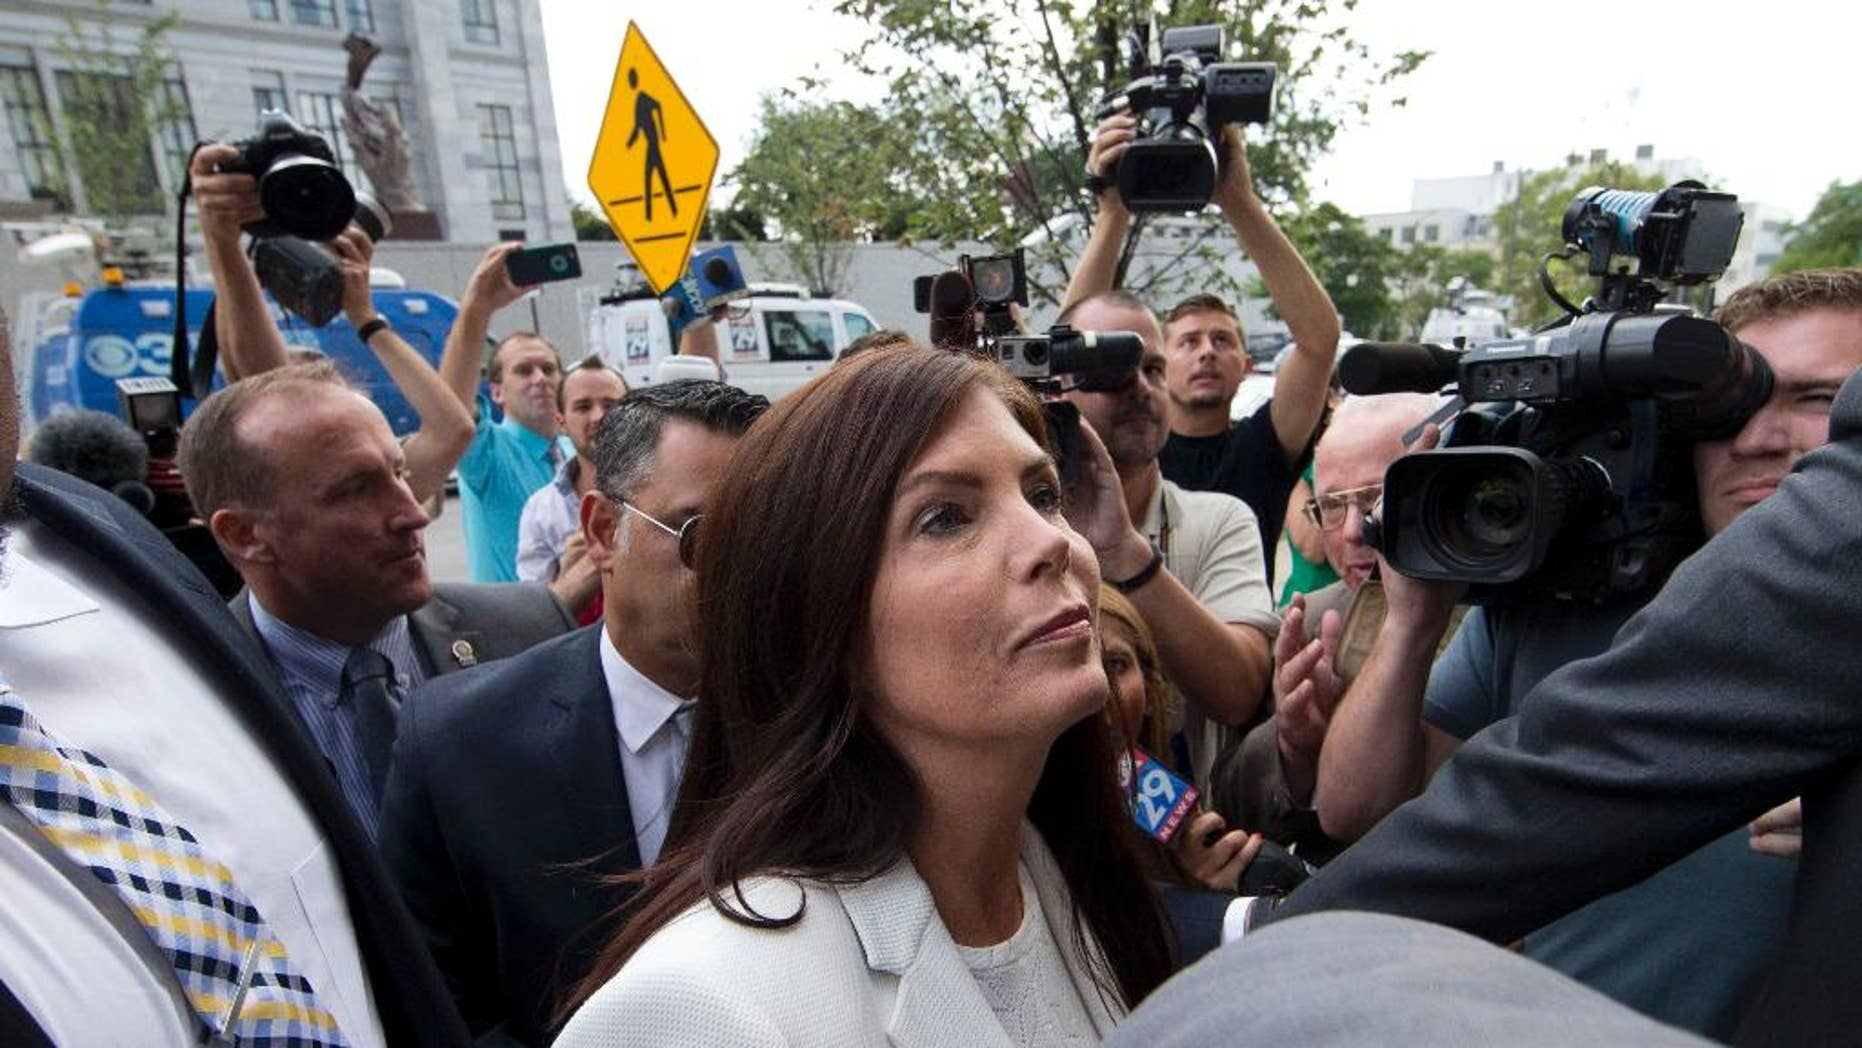 Pennsylvania Attorney General Kathleen Kane arrives to be processed and arraigned on charges she leaked secret grand jury material and then lied about it under oath, Saturday, Aug. 8, 2015, at the Montgomery County detective bureau in Norristown, Pa. Kane, the state's first elected female attorney general, vows to fight the charges, which include perjury, obstruction and conspiracy. (AP Photo/Matt Rourke)